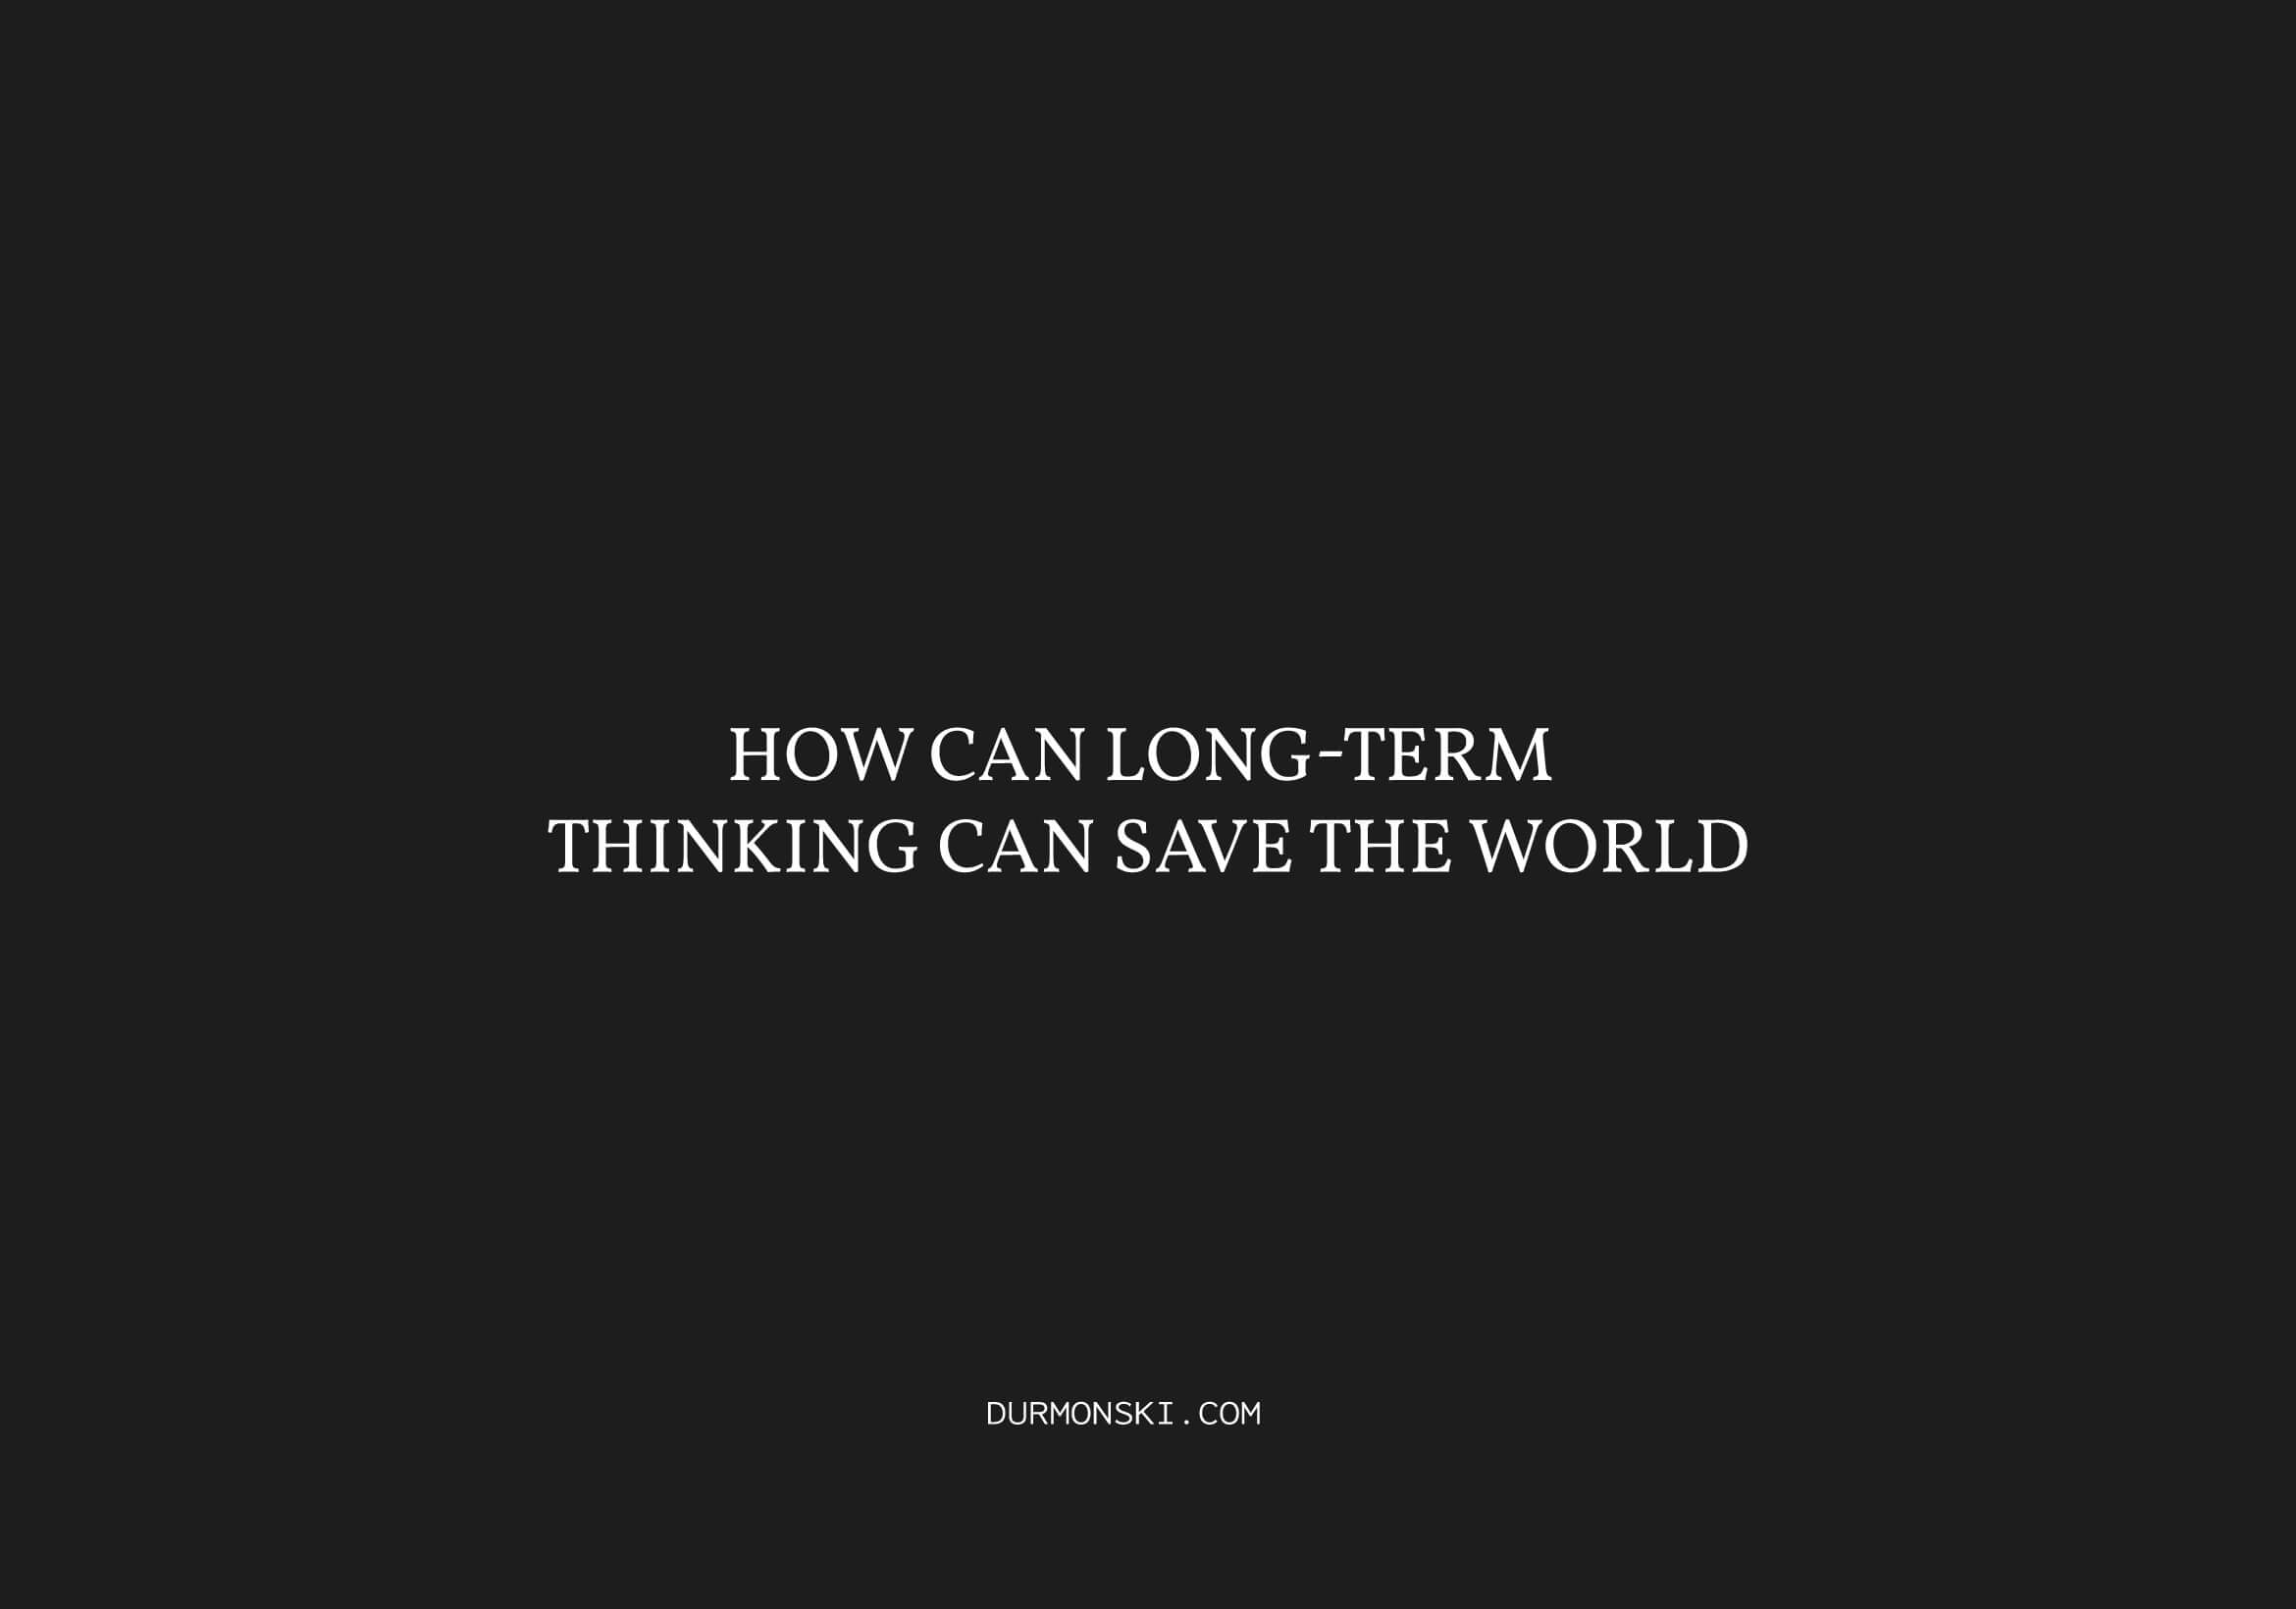 Long-Term Thinking